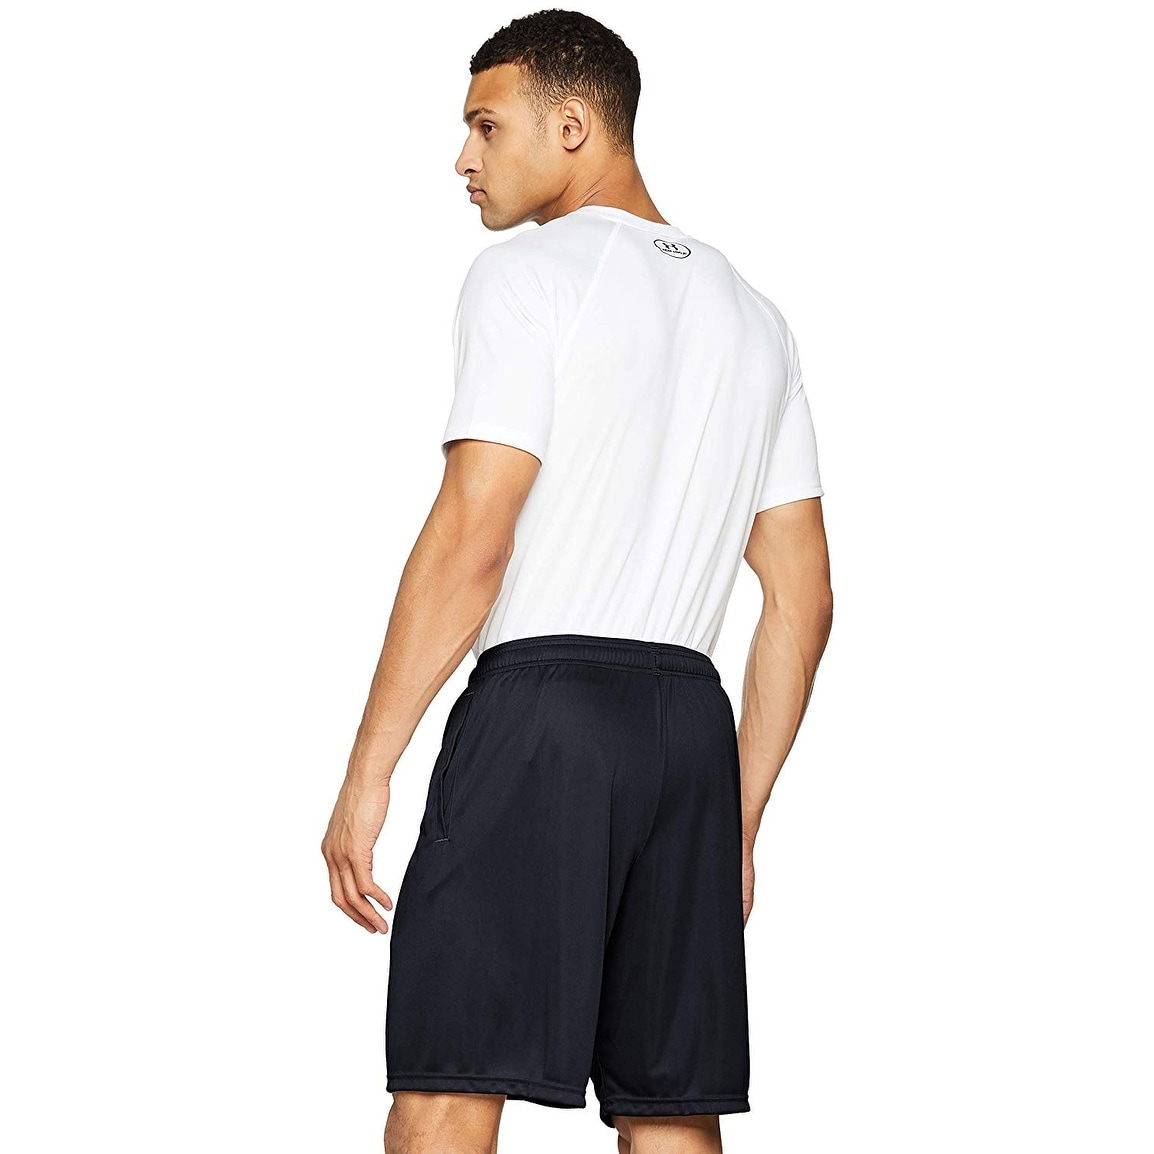 Under Armour Mens White Tech Graphic Pocketed Shorts 3XL